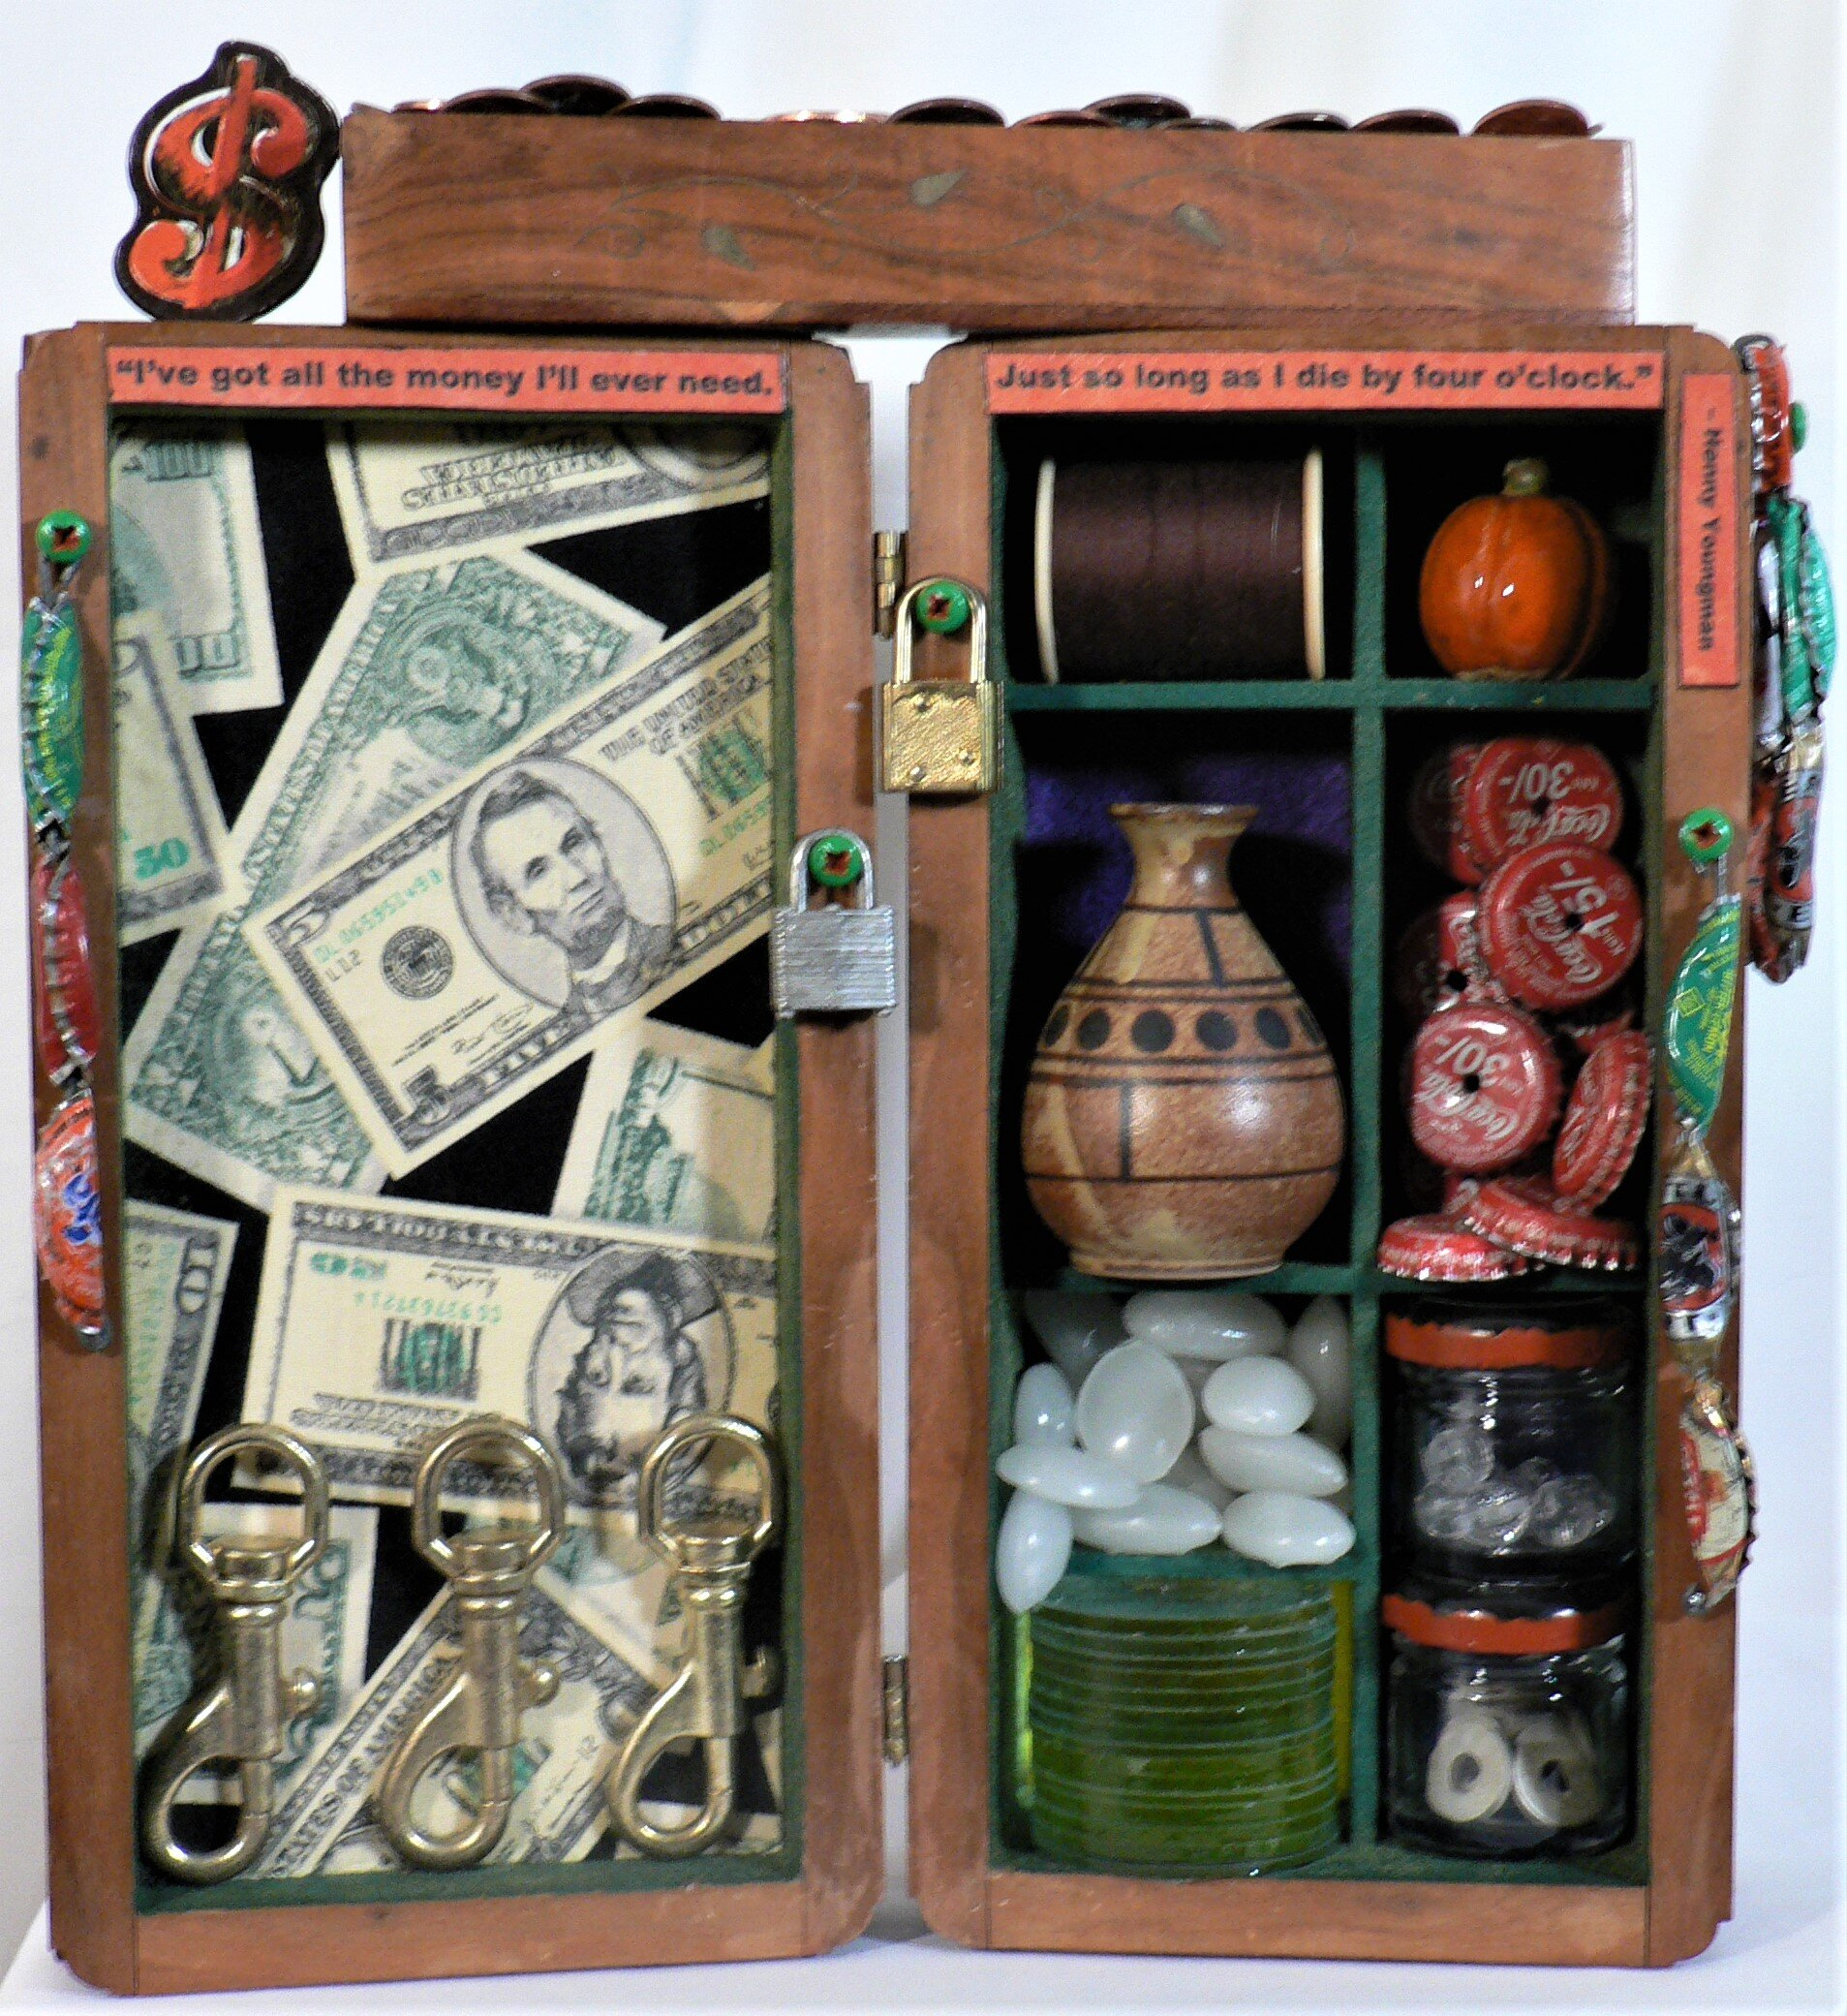 """Mercado - """"I've got all the money I'll ever need. Just so long as I die by four o'clock."""" – Henny YoungmanMaterials: Man's dresser caddy; cotton textile print; ceramic pumpkin; white glow-in-the-dark decorative rocks; glass track light lens; ceramic bud vase; soda pop caps; thread; metal washers; plastic beads; spice jars; coins; dog leash turnbuckles; metal padlocks; acrylic paint.Dimensions: 11""""H x 11.5""""W x 3""""D. Created: September 2019.Status: For Sale ($100)"""